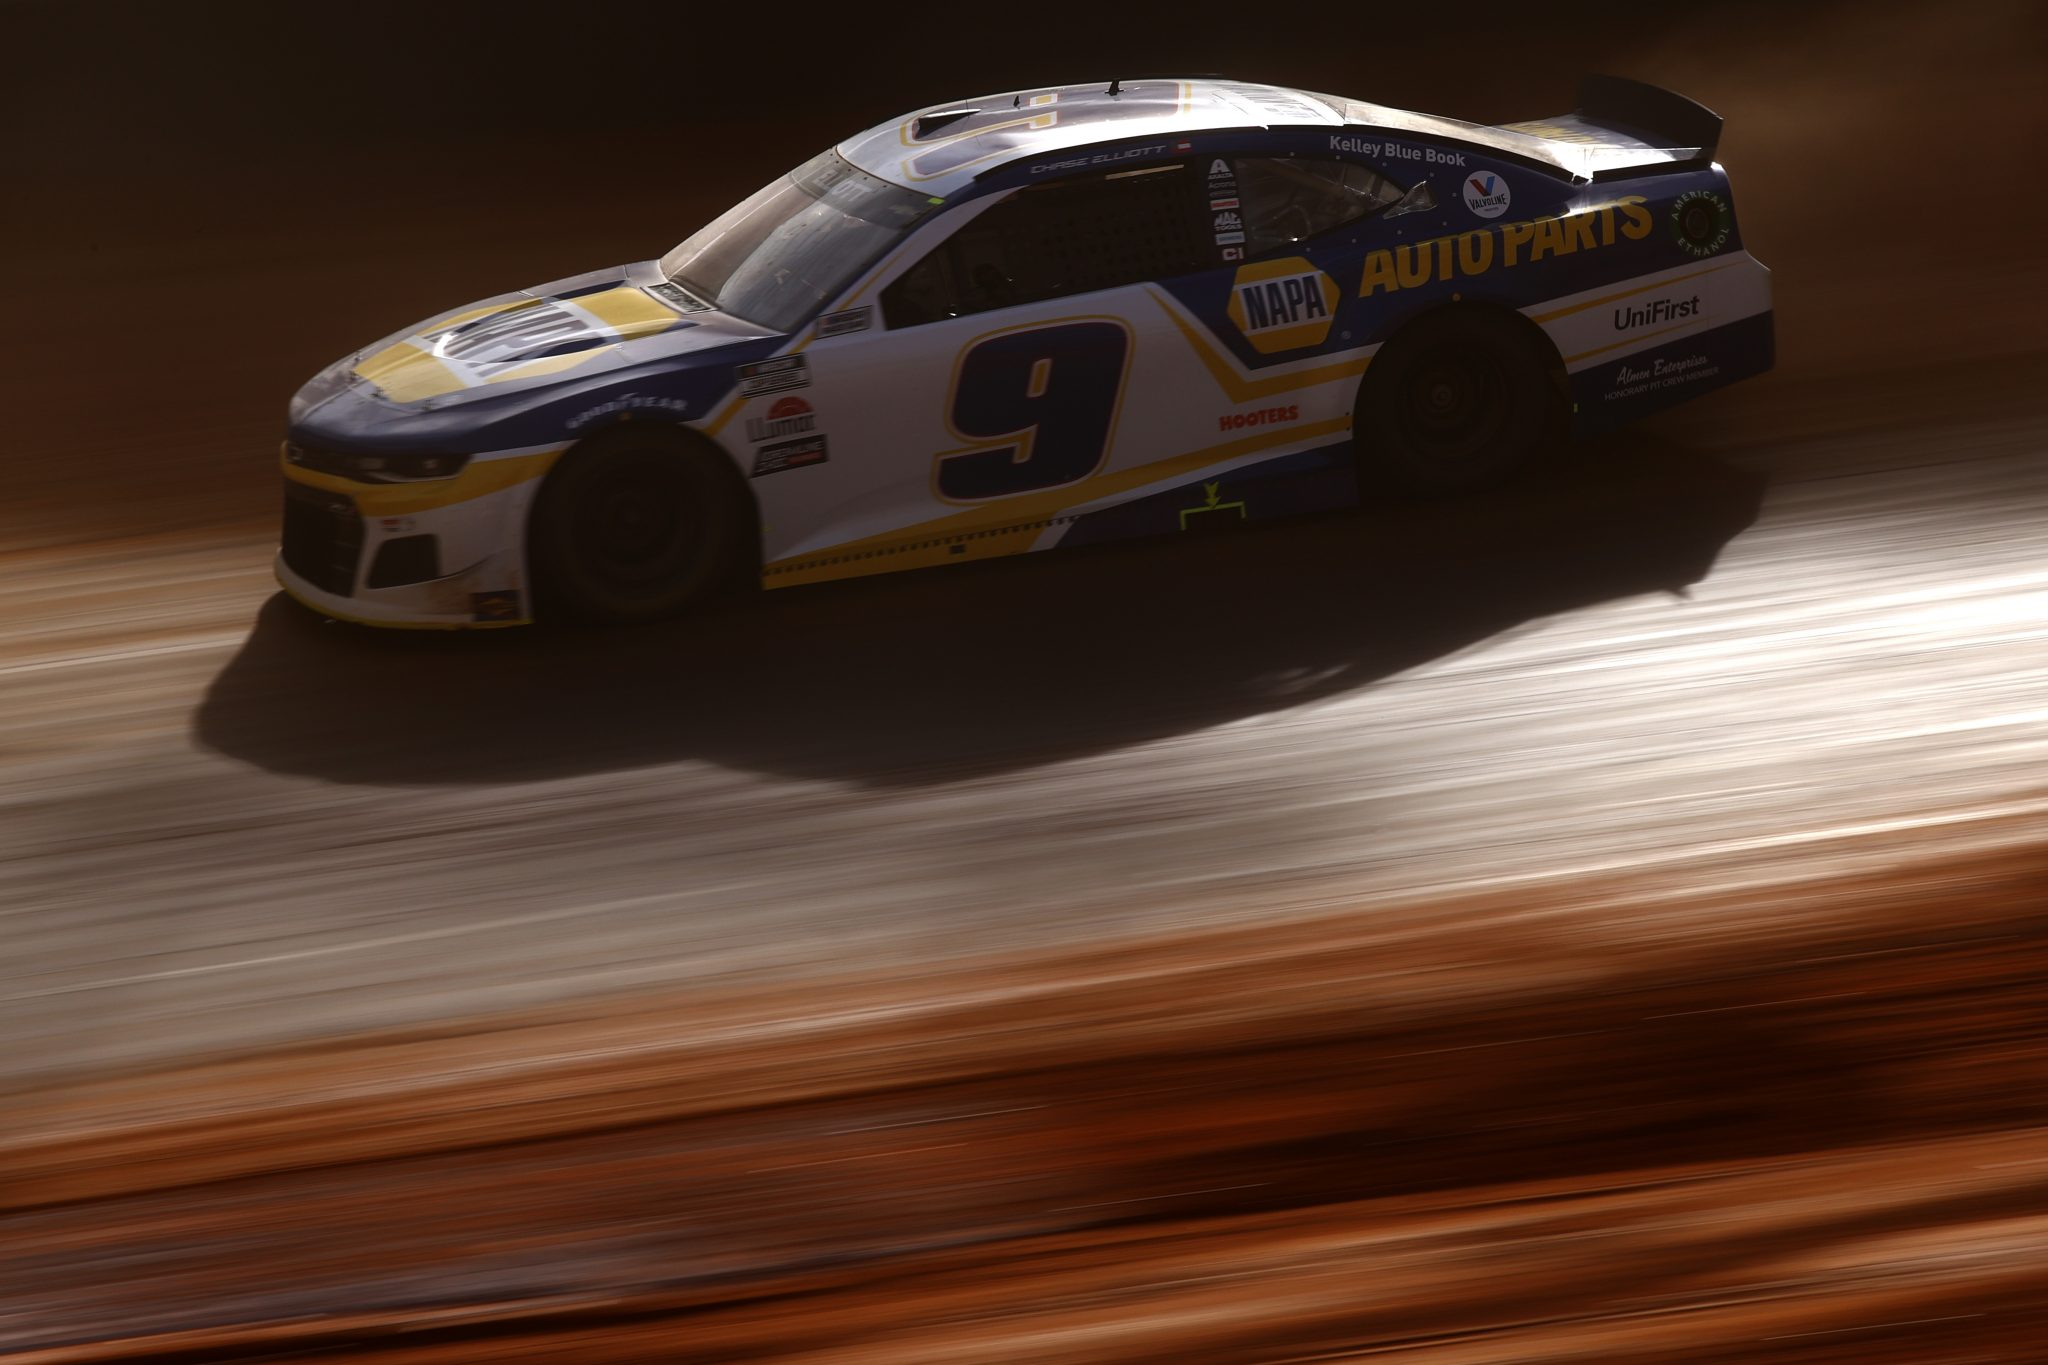 BRISTOL, TENNESSEE - MARCH 26: Chase Elliott, driver of the #9 NAPA Auto Parts Chevrolet, drives during practice for the NASCAR Cup Series Food City Dirt Race at Bristol Motor Speedway on March 26, 2021 in Bristol, Tennessee. (Photo by Chris Graythen/Getty Images) | Getty Images